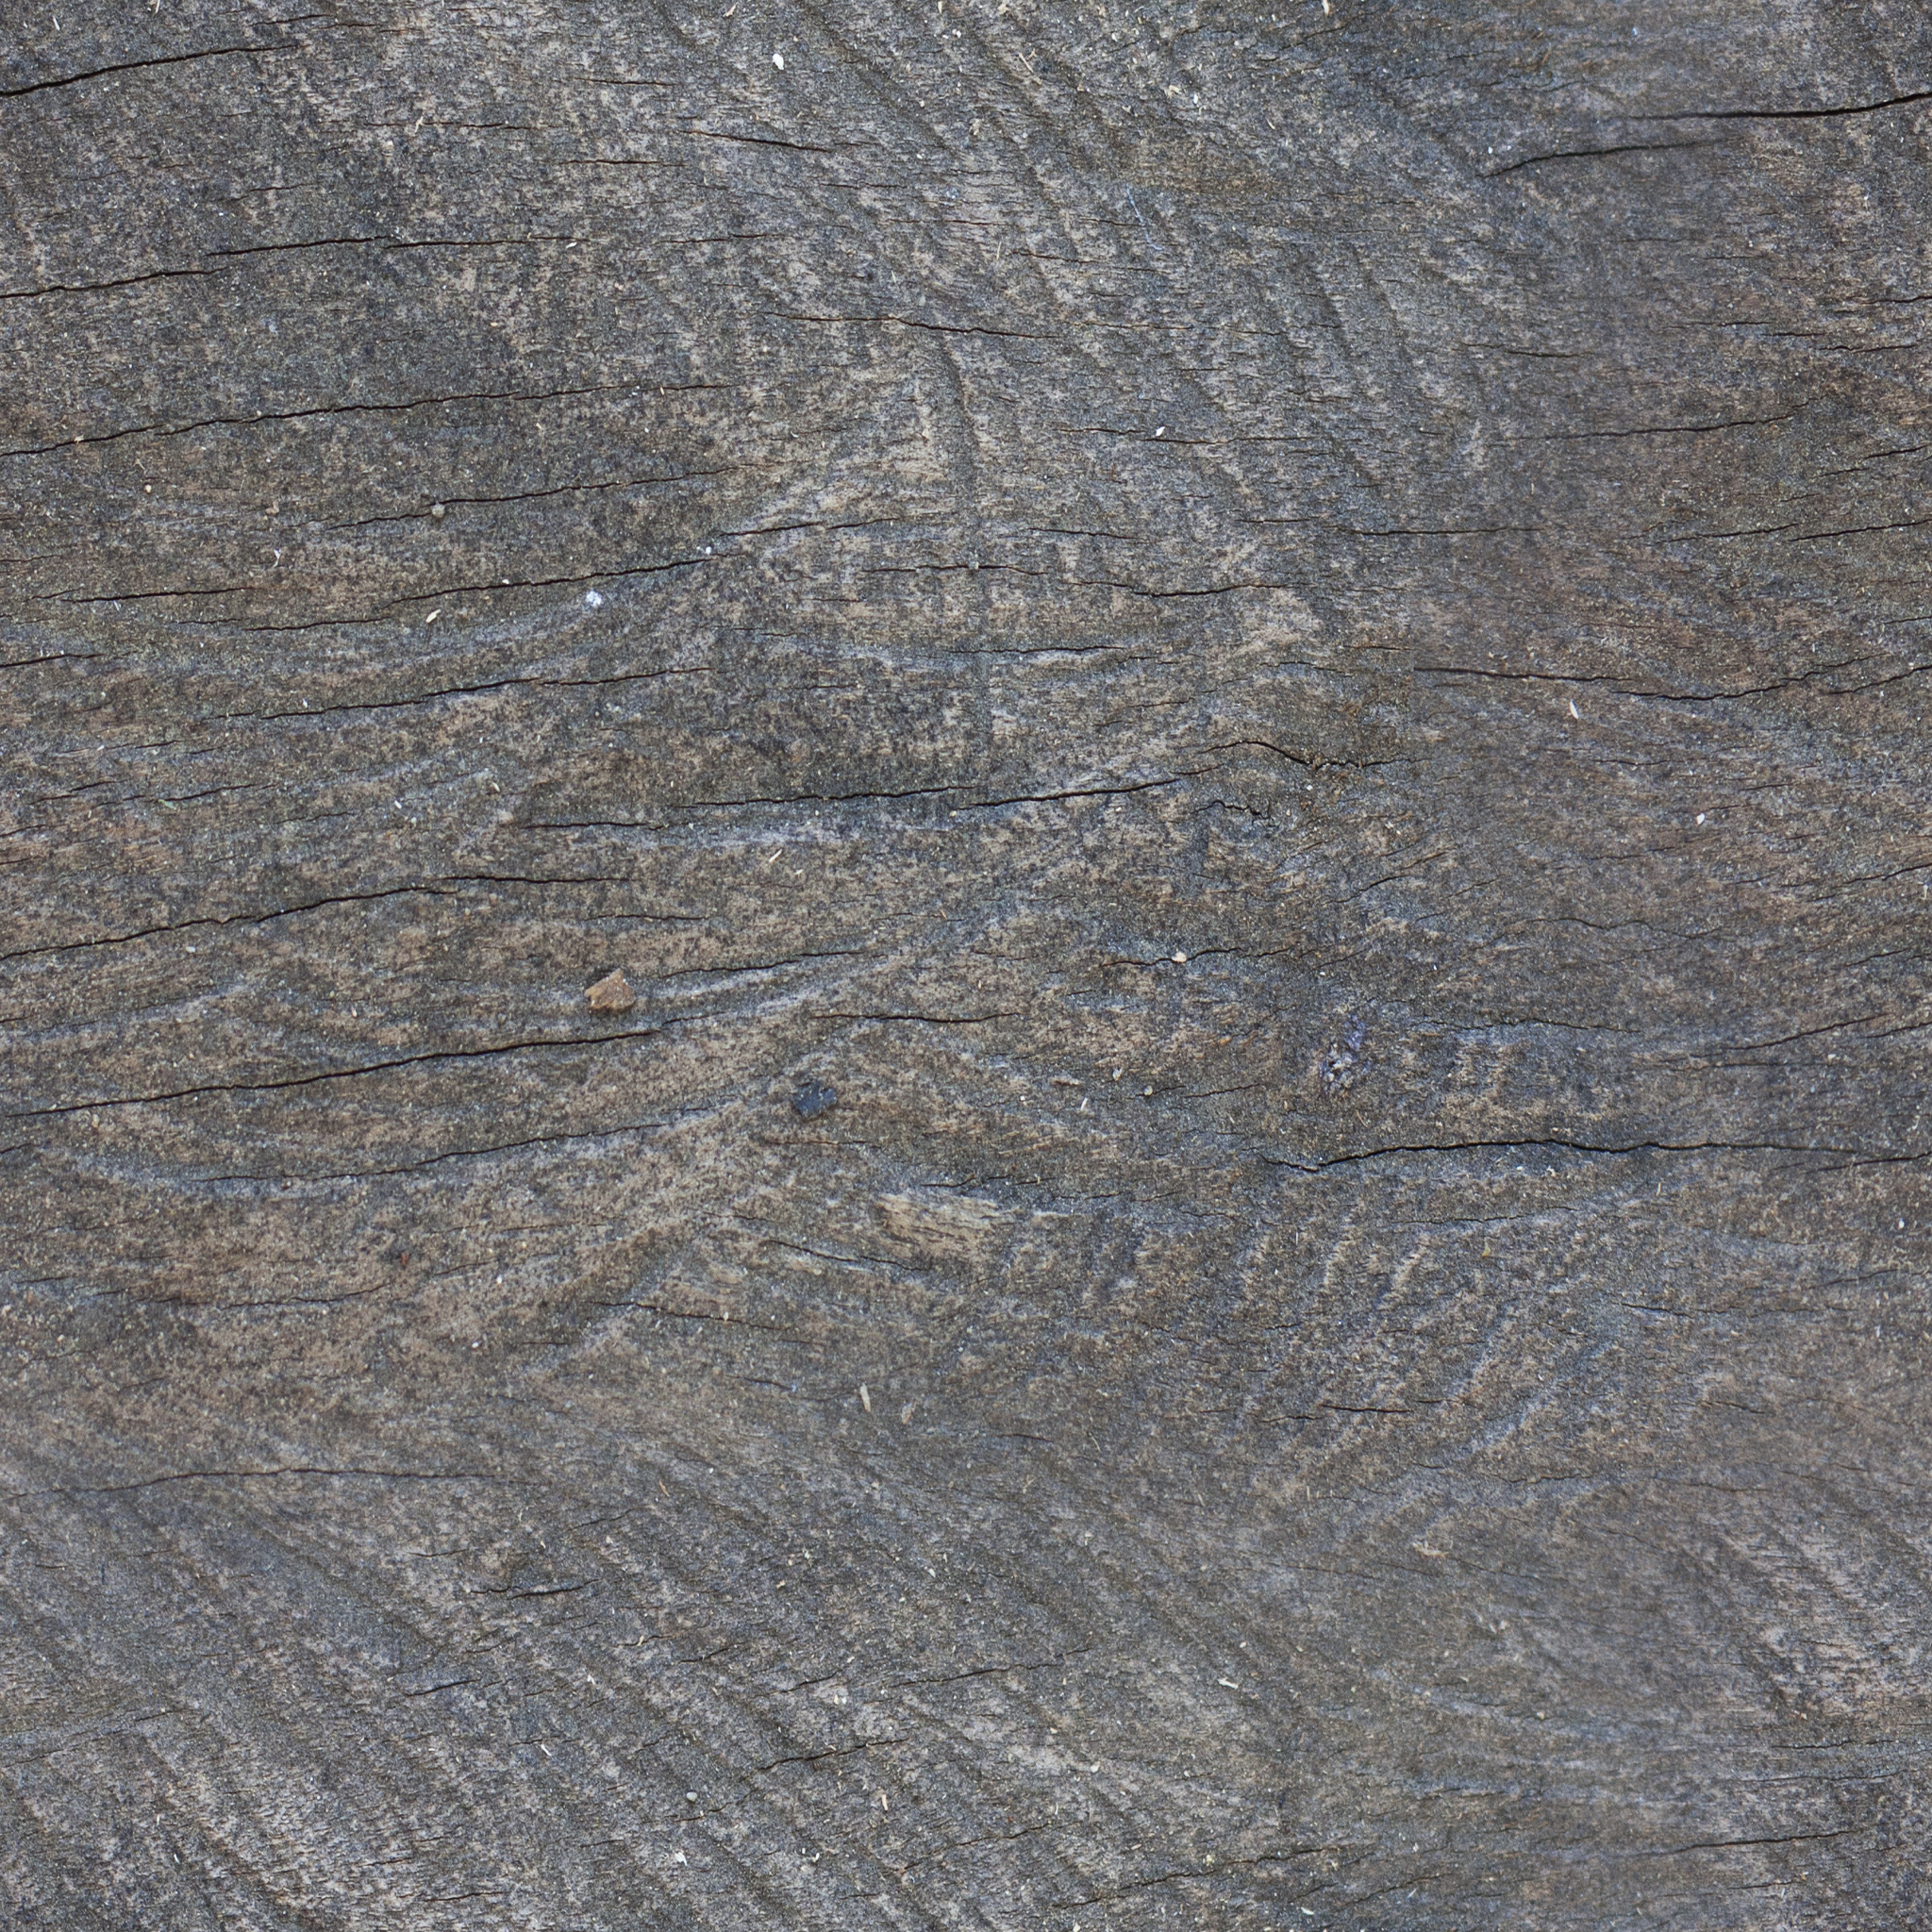 Antique Carbon Wood.jpg